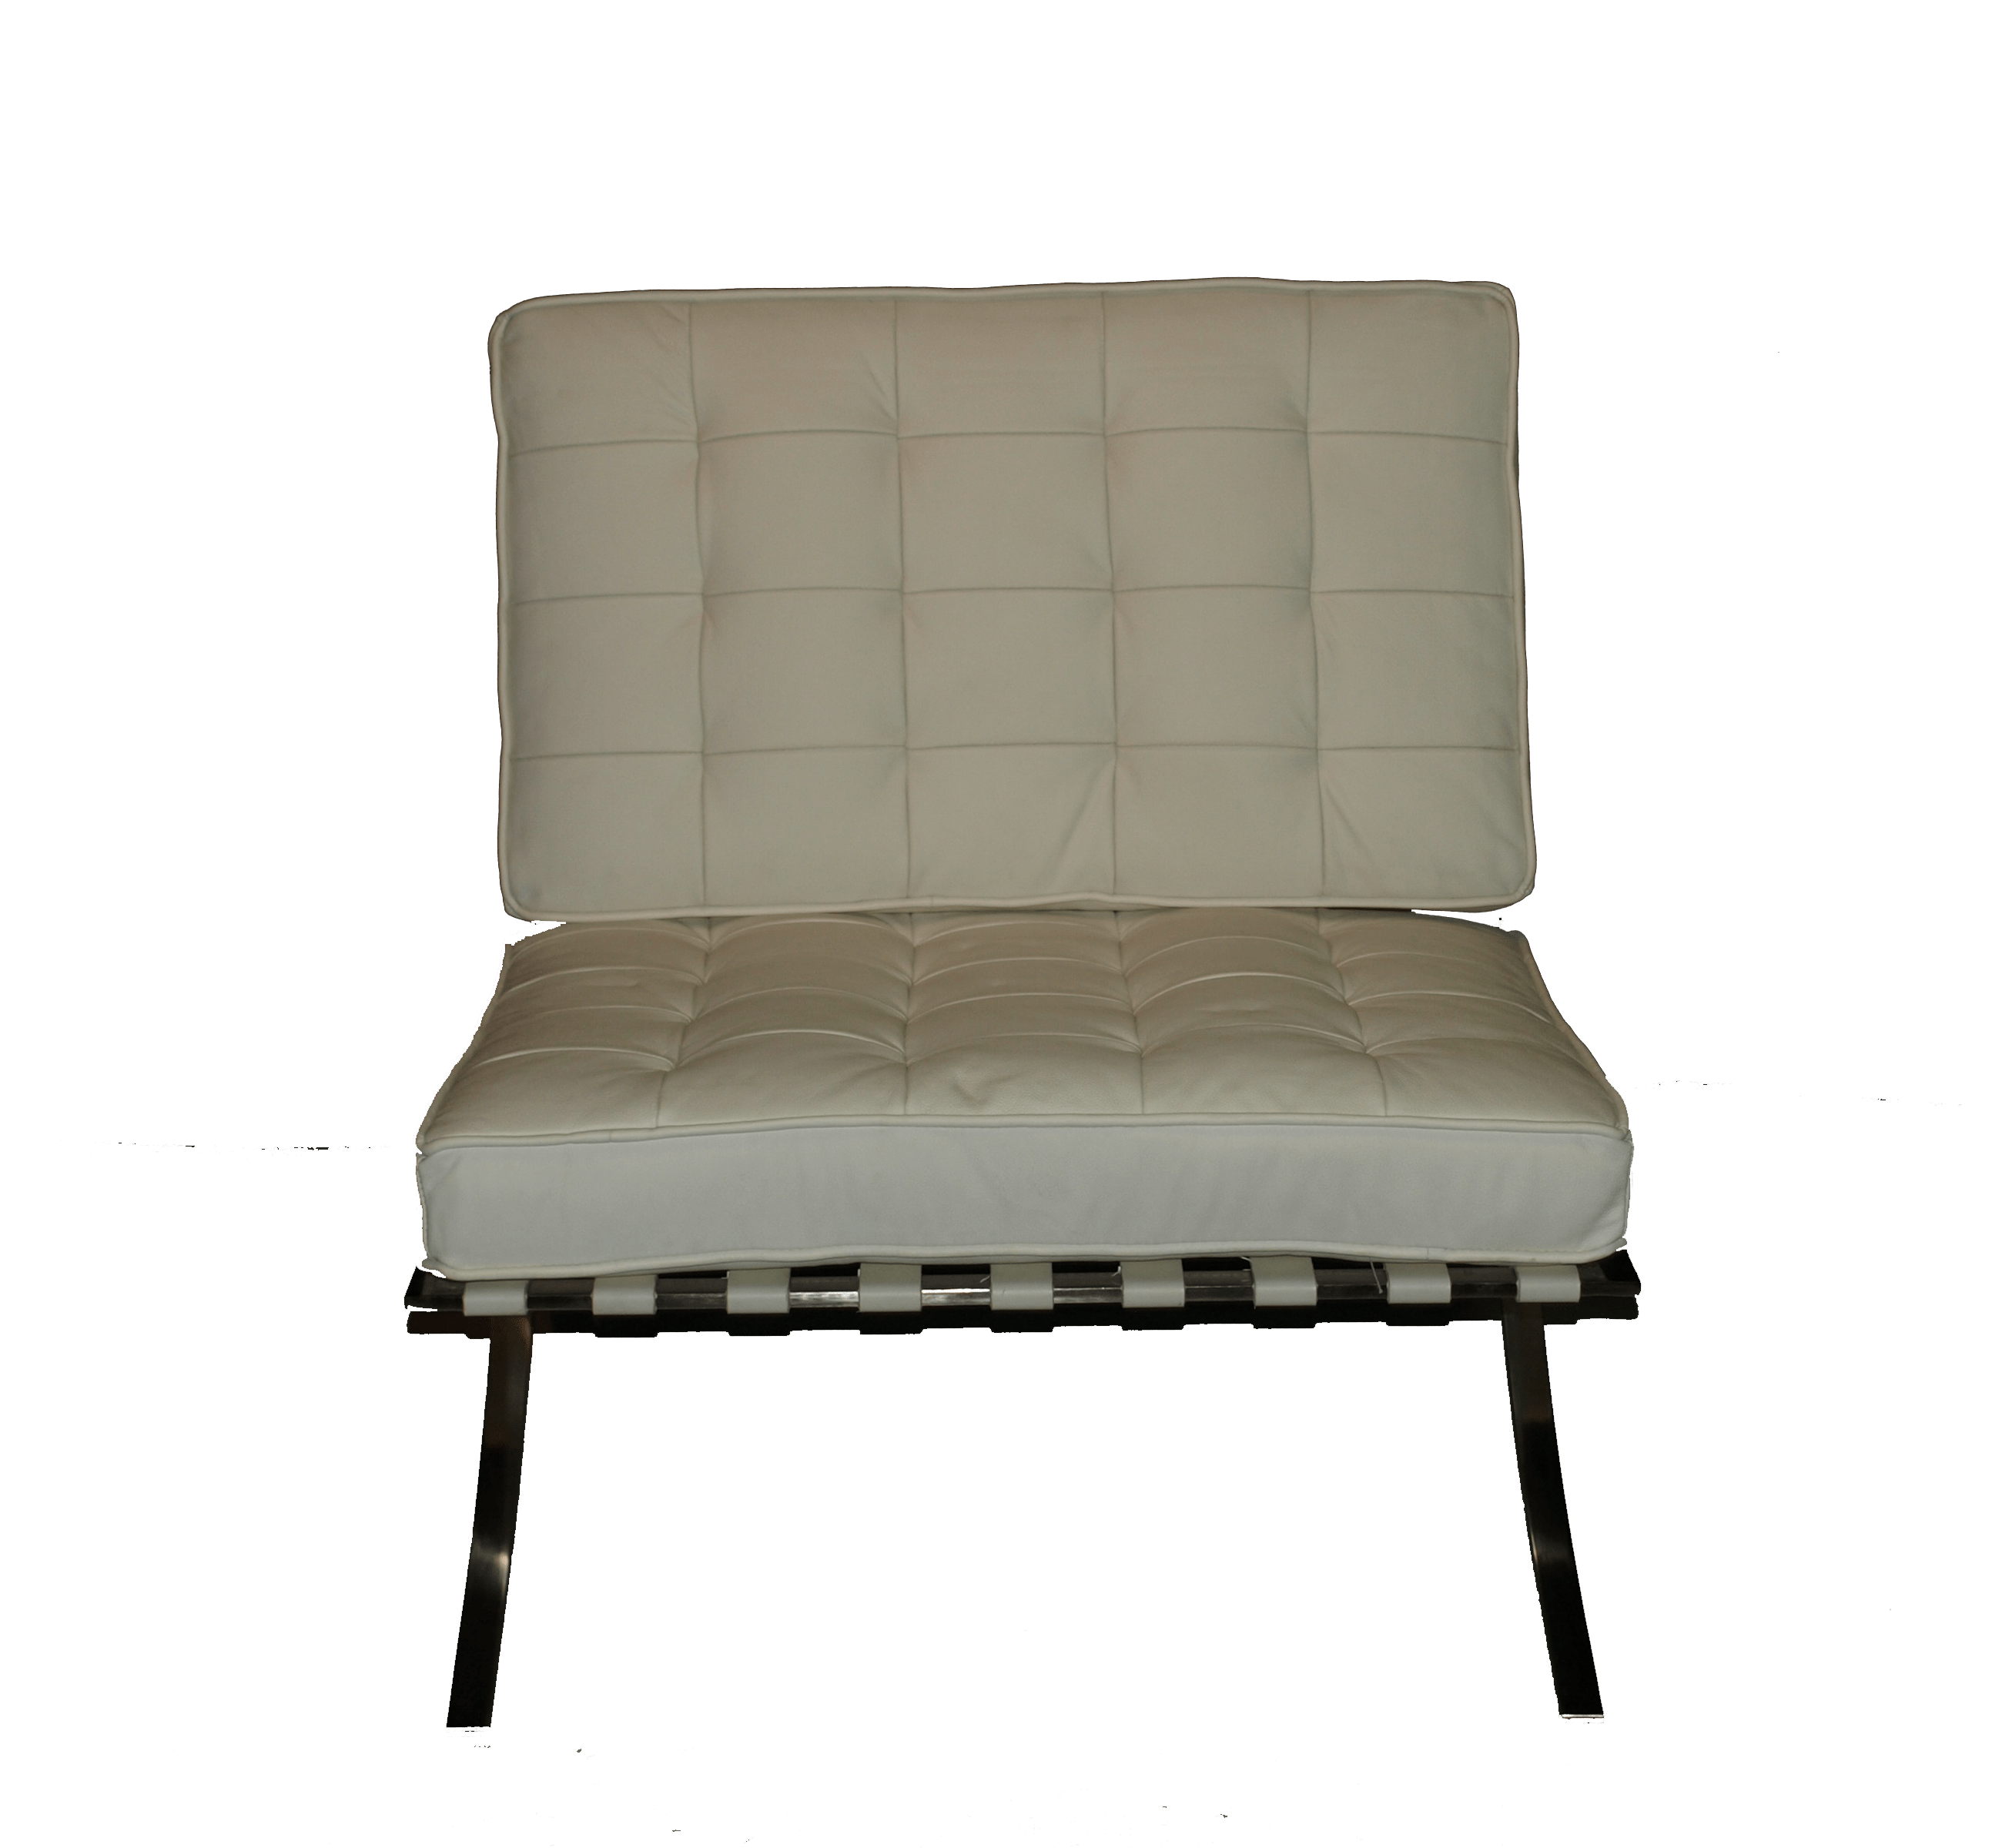 recliner chair hire healthy posture furniture perth corporate